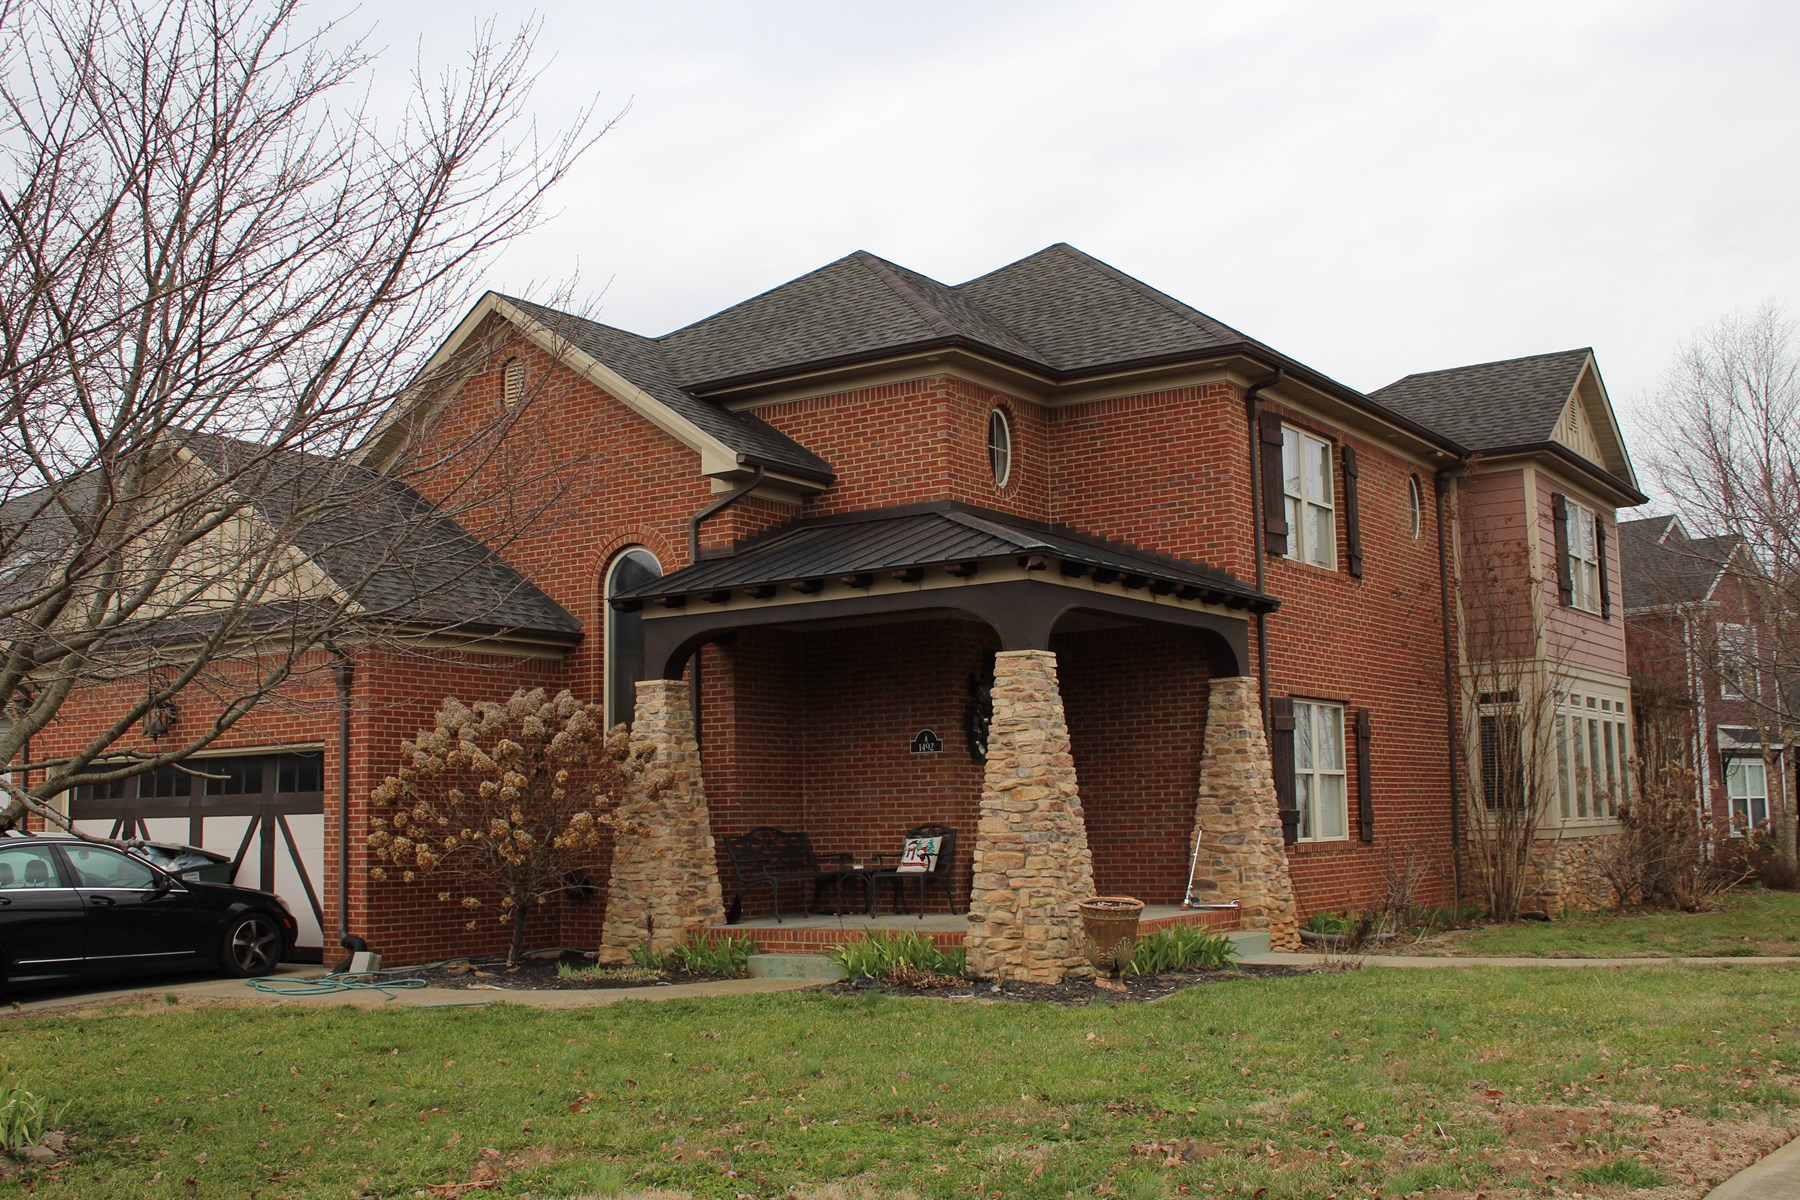 4 bedroom 3 bath with bonus room for sale, Bowling Green,Ky